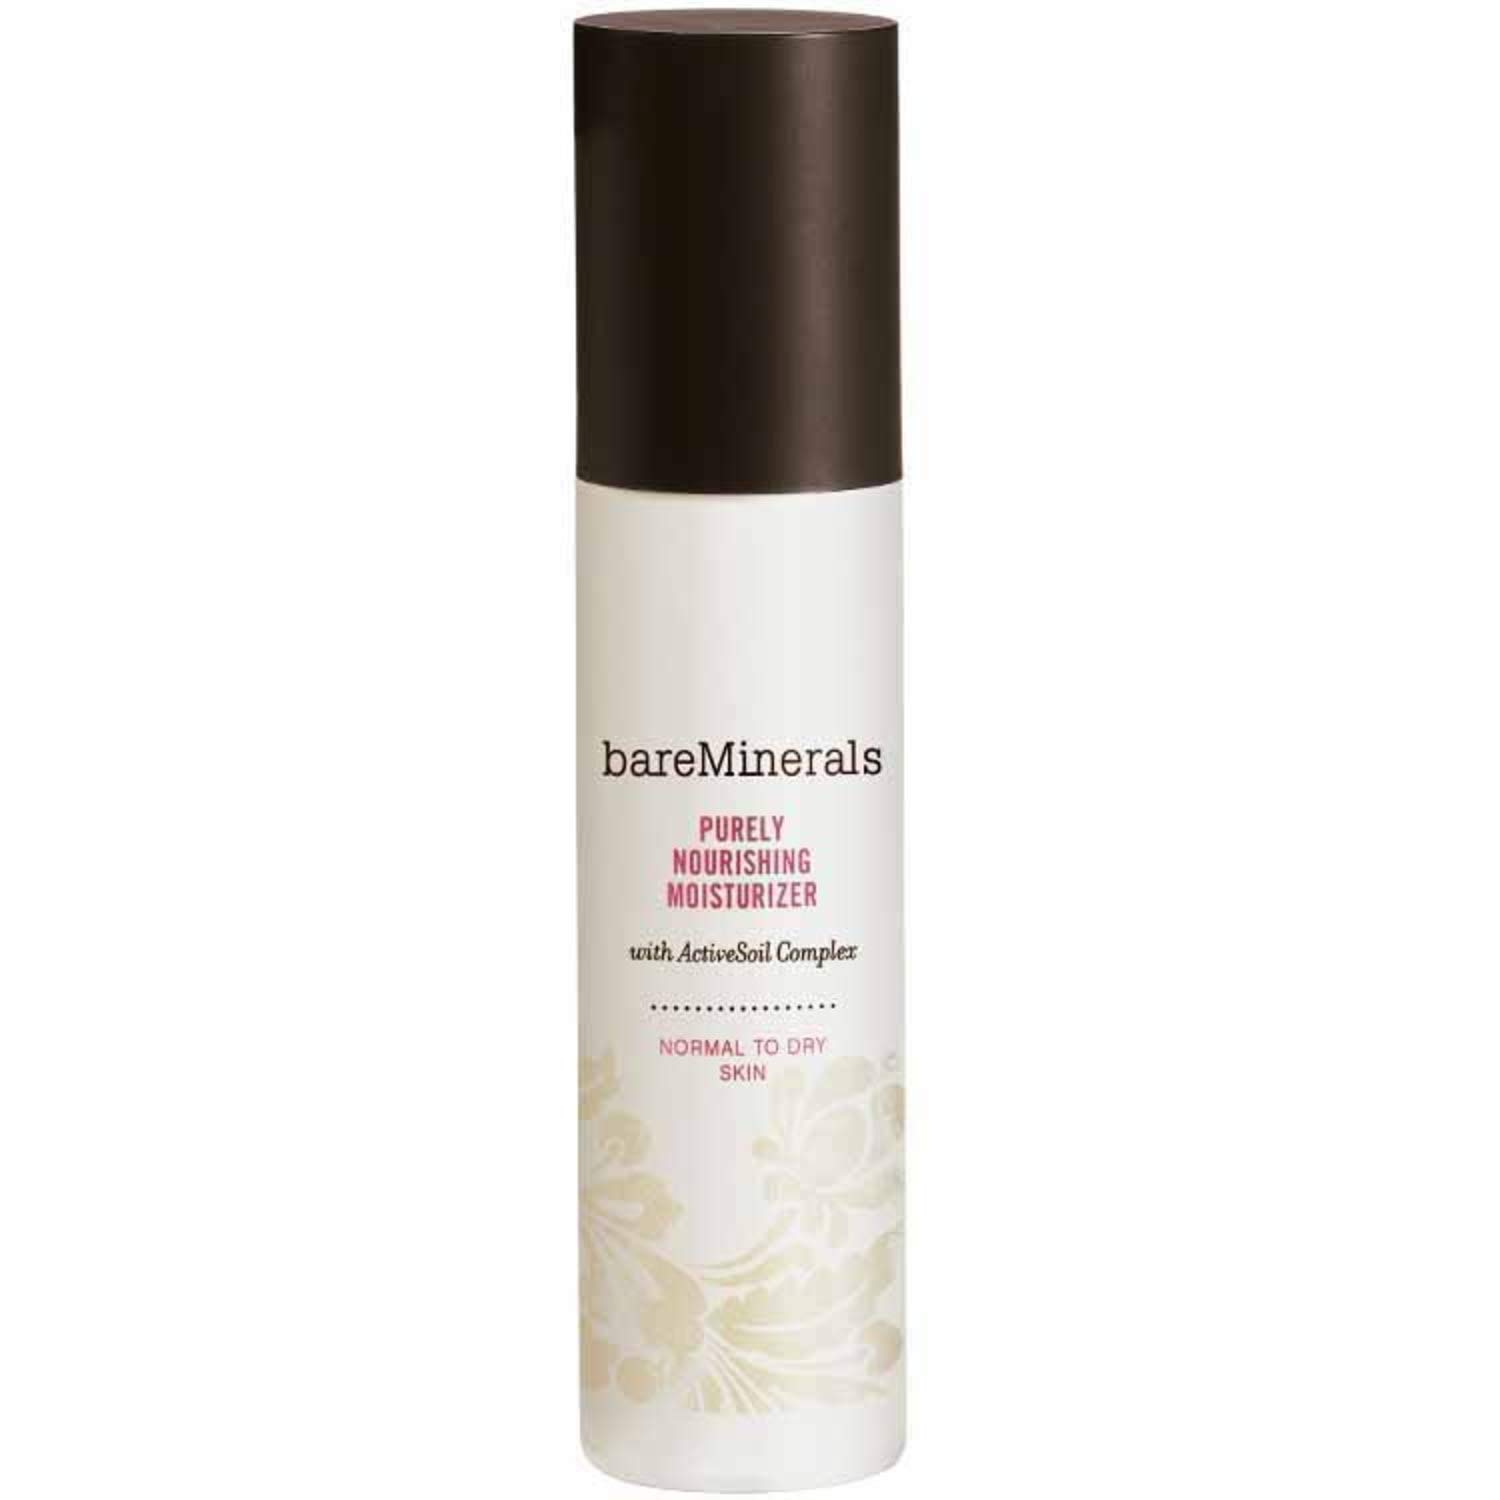 bareMinerals Purely Nourishing Moisturizer For Normal To Dry Skin, 1.7 Ounce